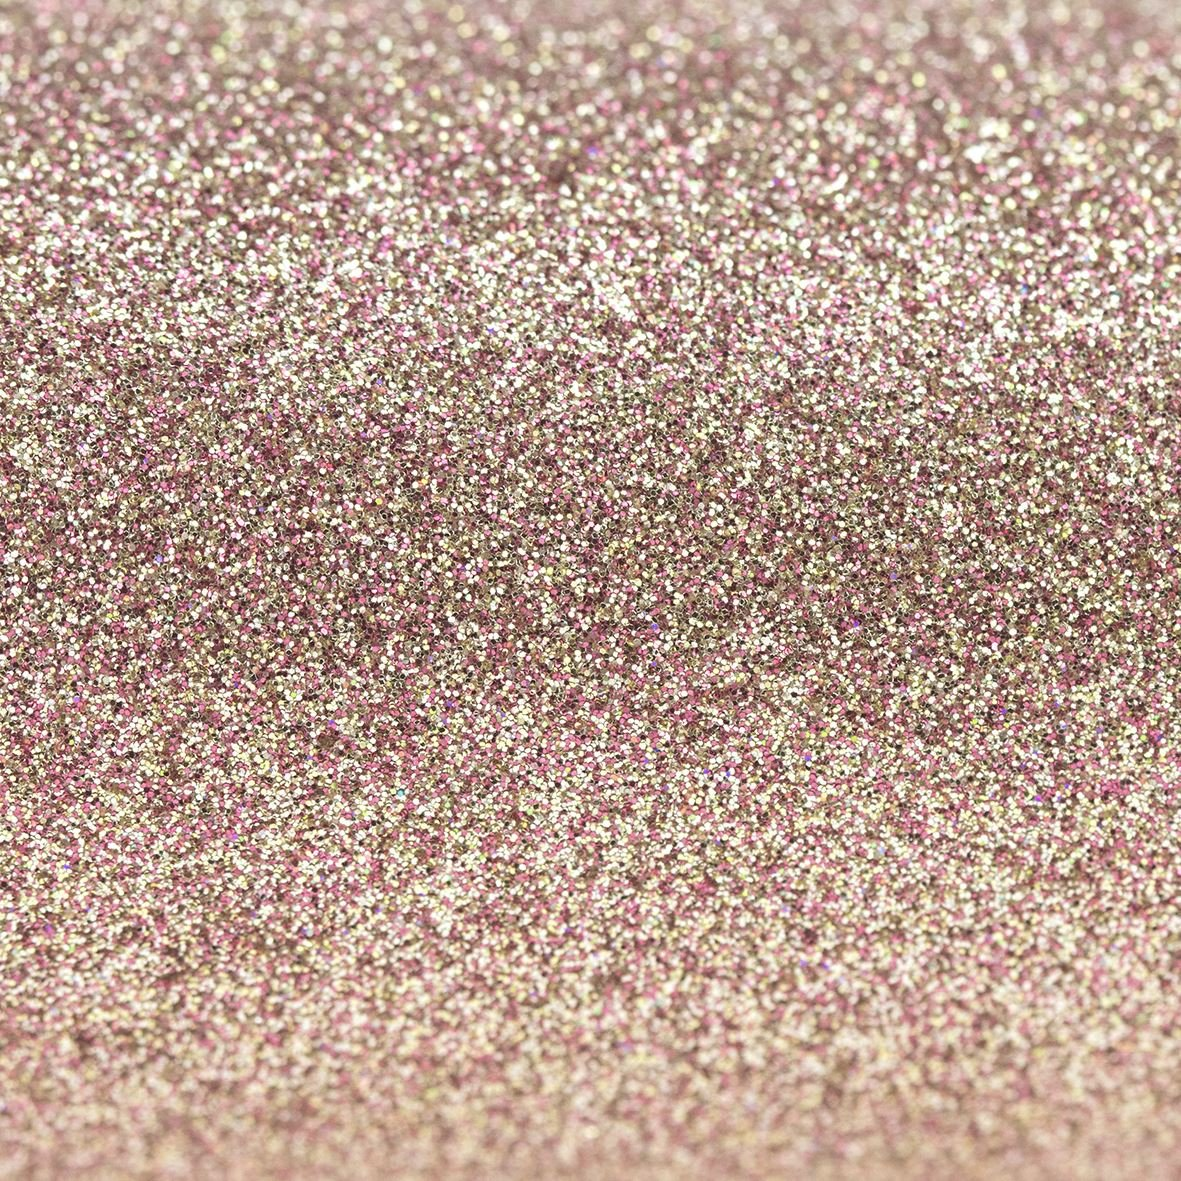 Pack of 10-220gsm Copper Glitter A4 Card